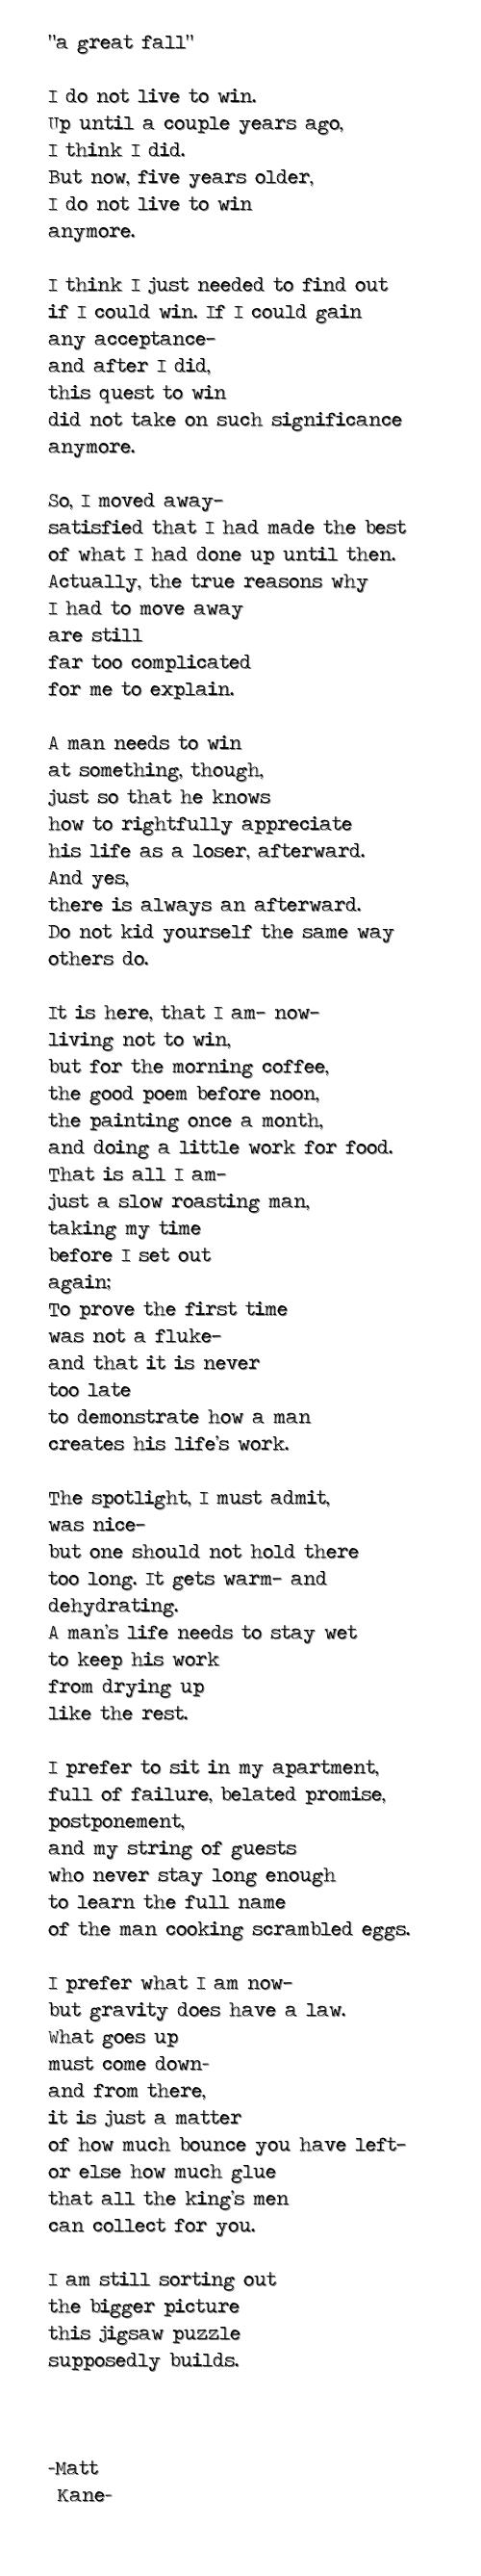 a great fall - a poem by Matt Kane